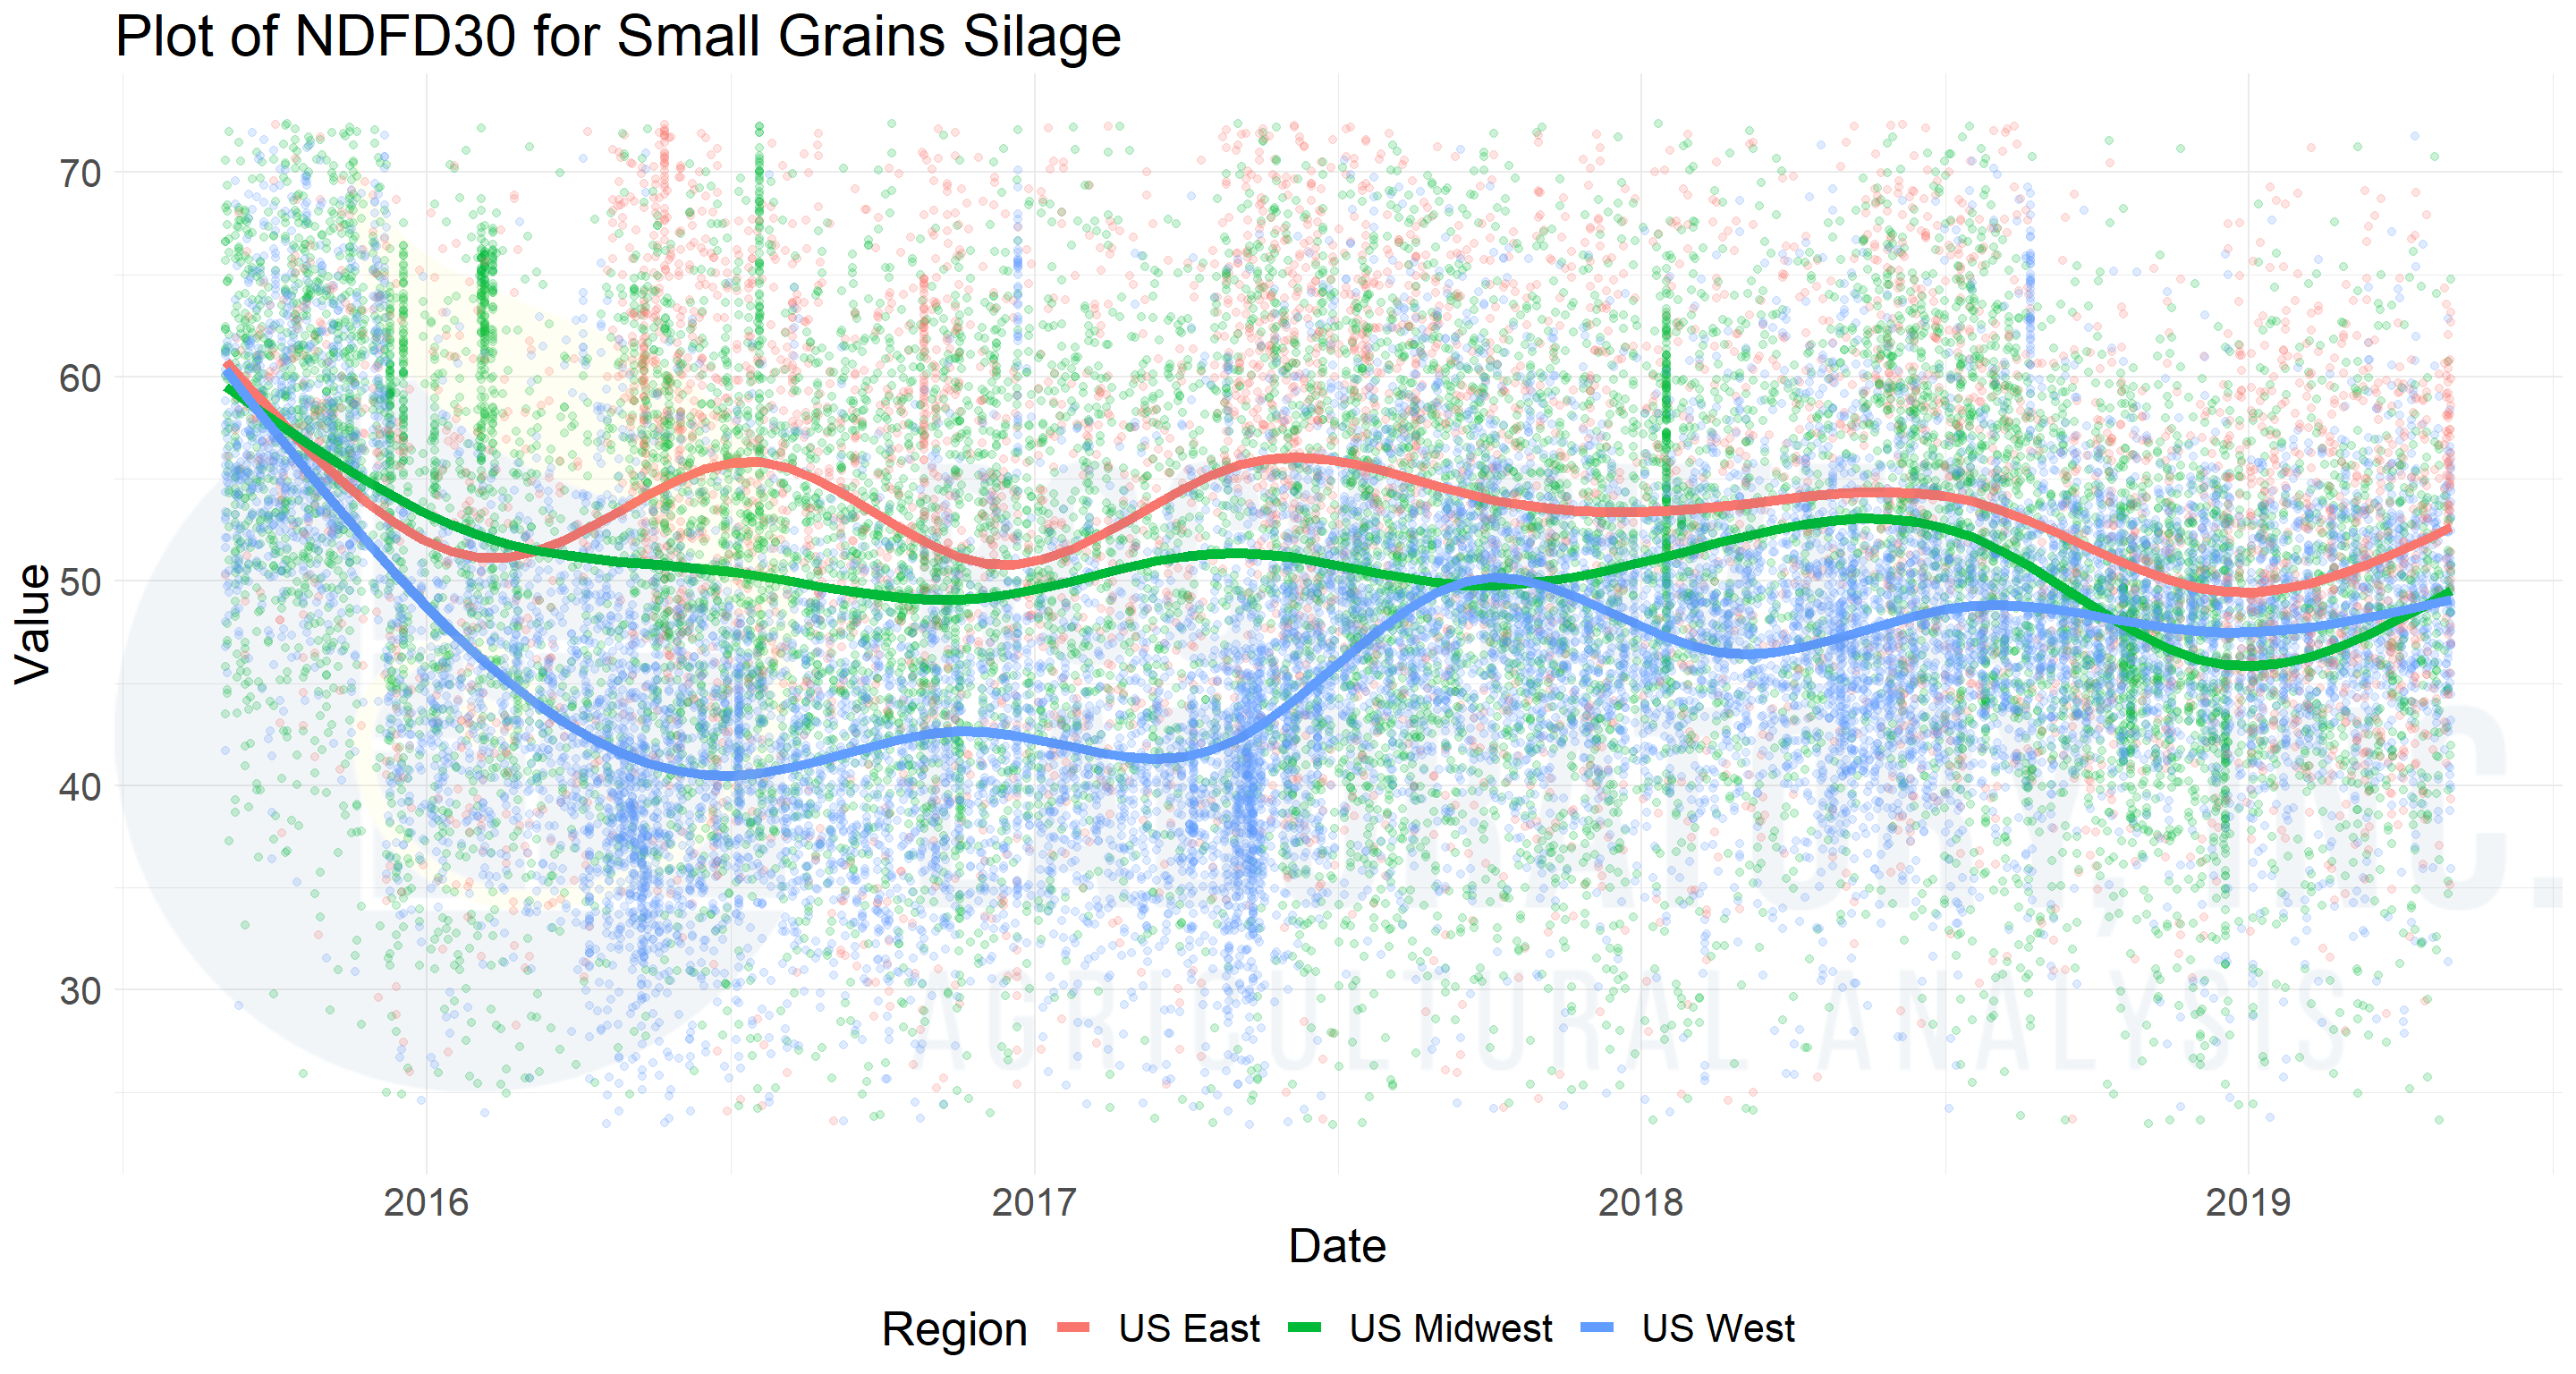 Figure 2_Plot of NDFD30 for Small Grains Silage_Rock River Laboratory database